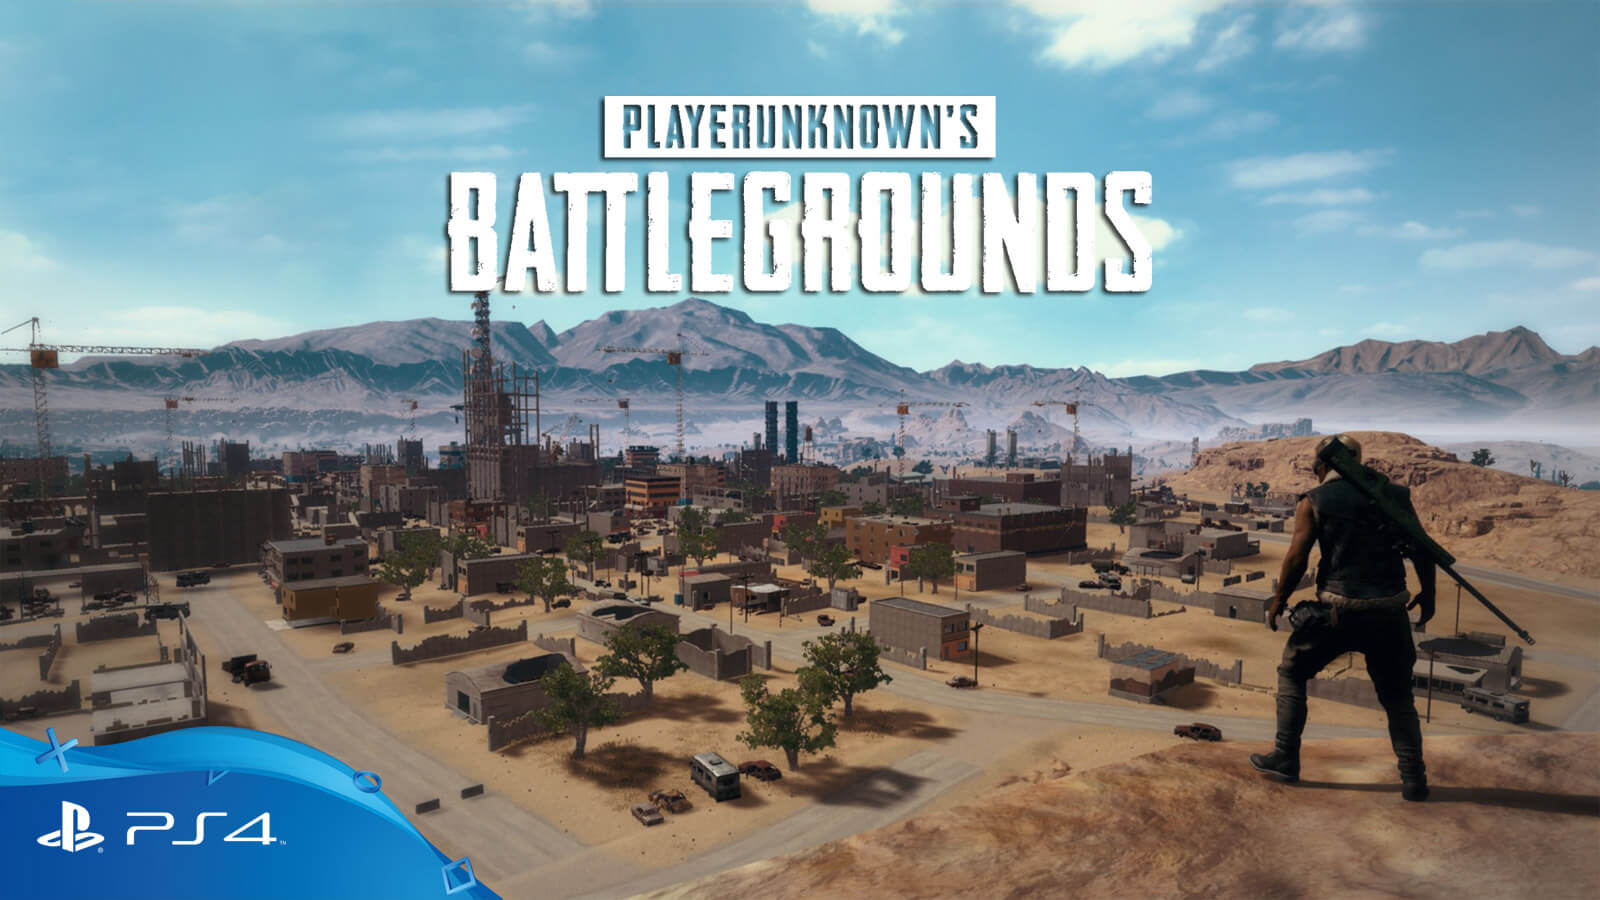 Pubg How To Earn More Battle Points Bp Every Game: PlayerUnknown's Battlegrounds Comes To PS4